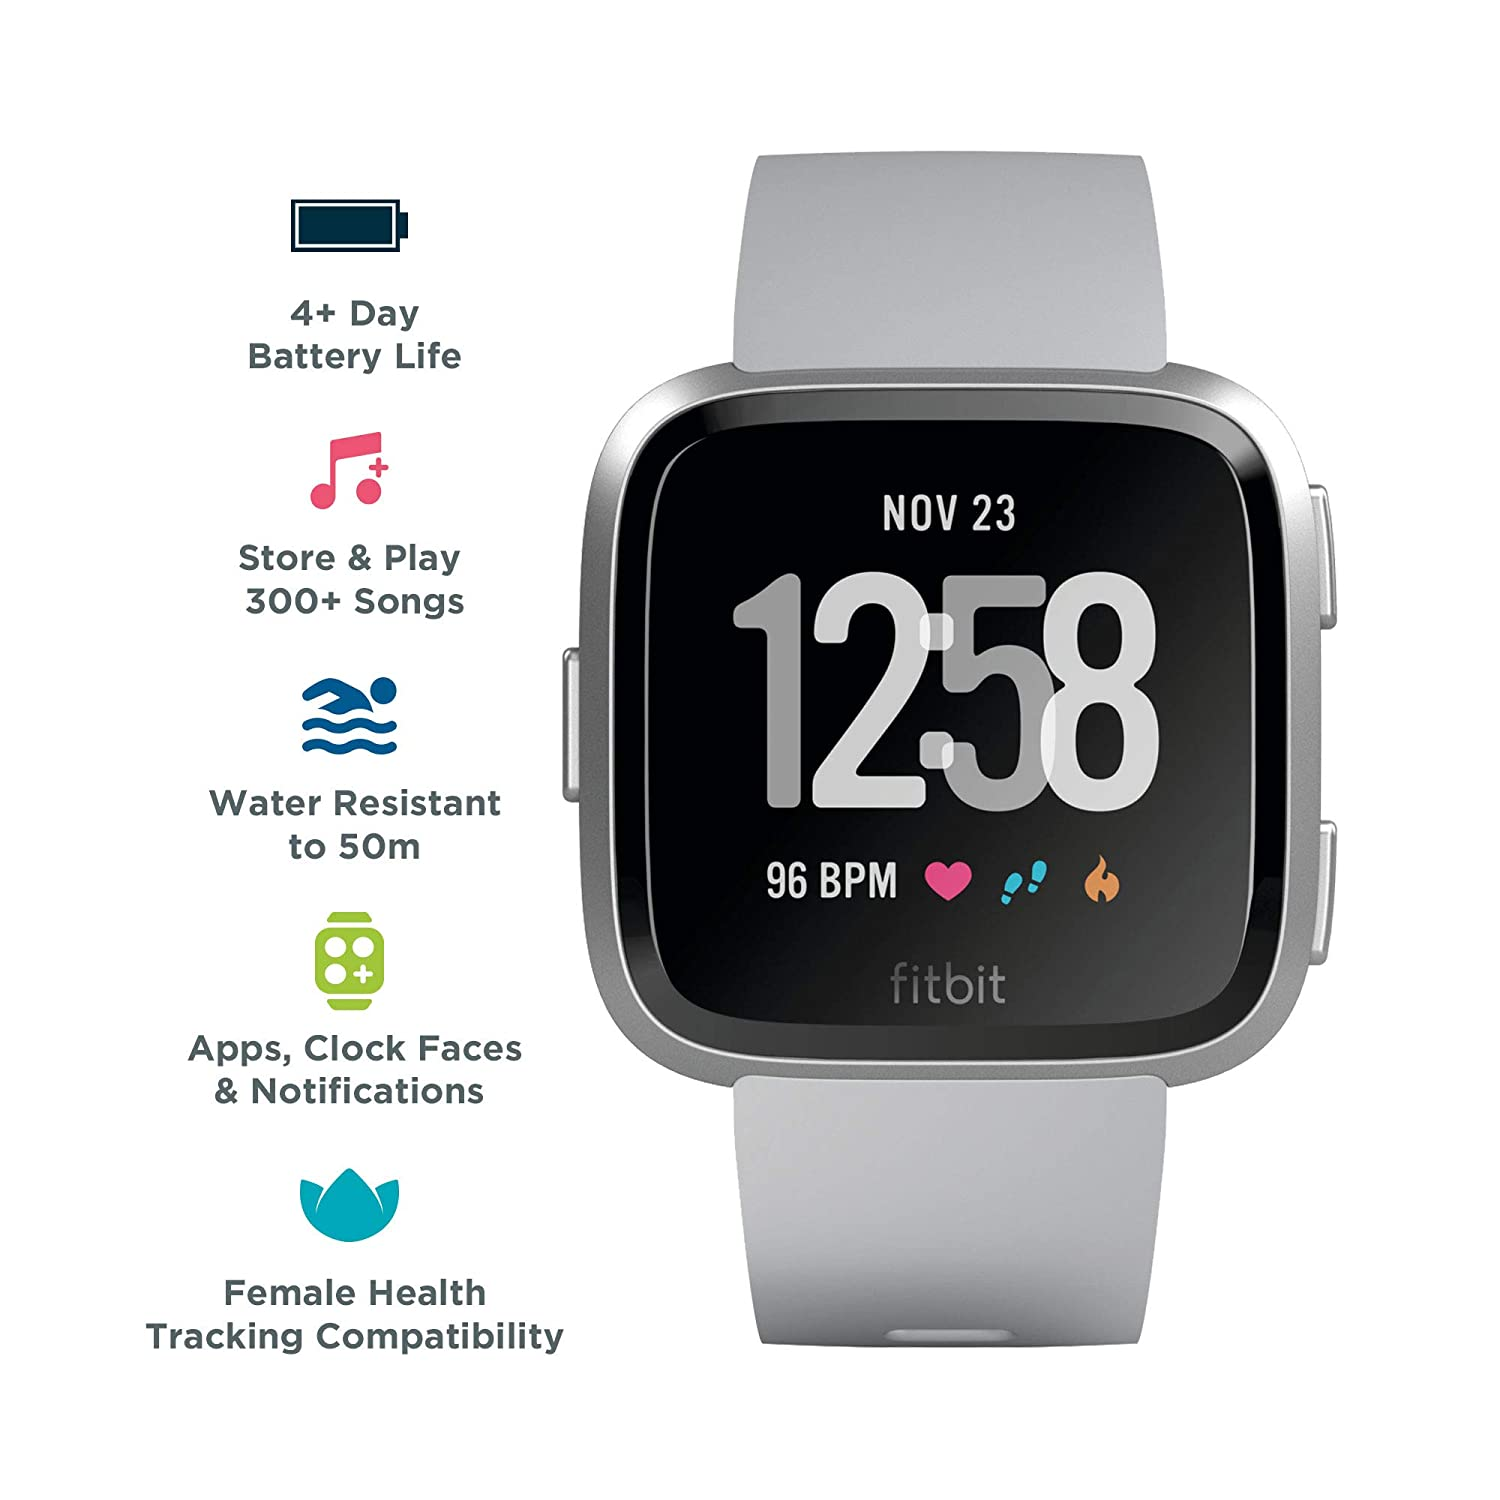 Amazon.com: Fitbit Versa Smart Watch, Gray/Silver Aluminium, One Size (S & L Bands Included): Cell Phones & Accessories